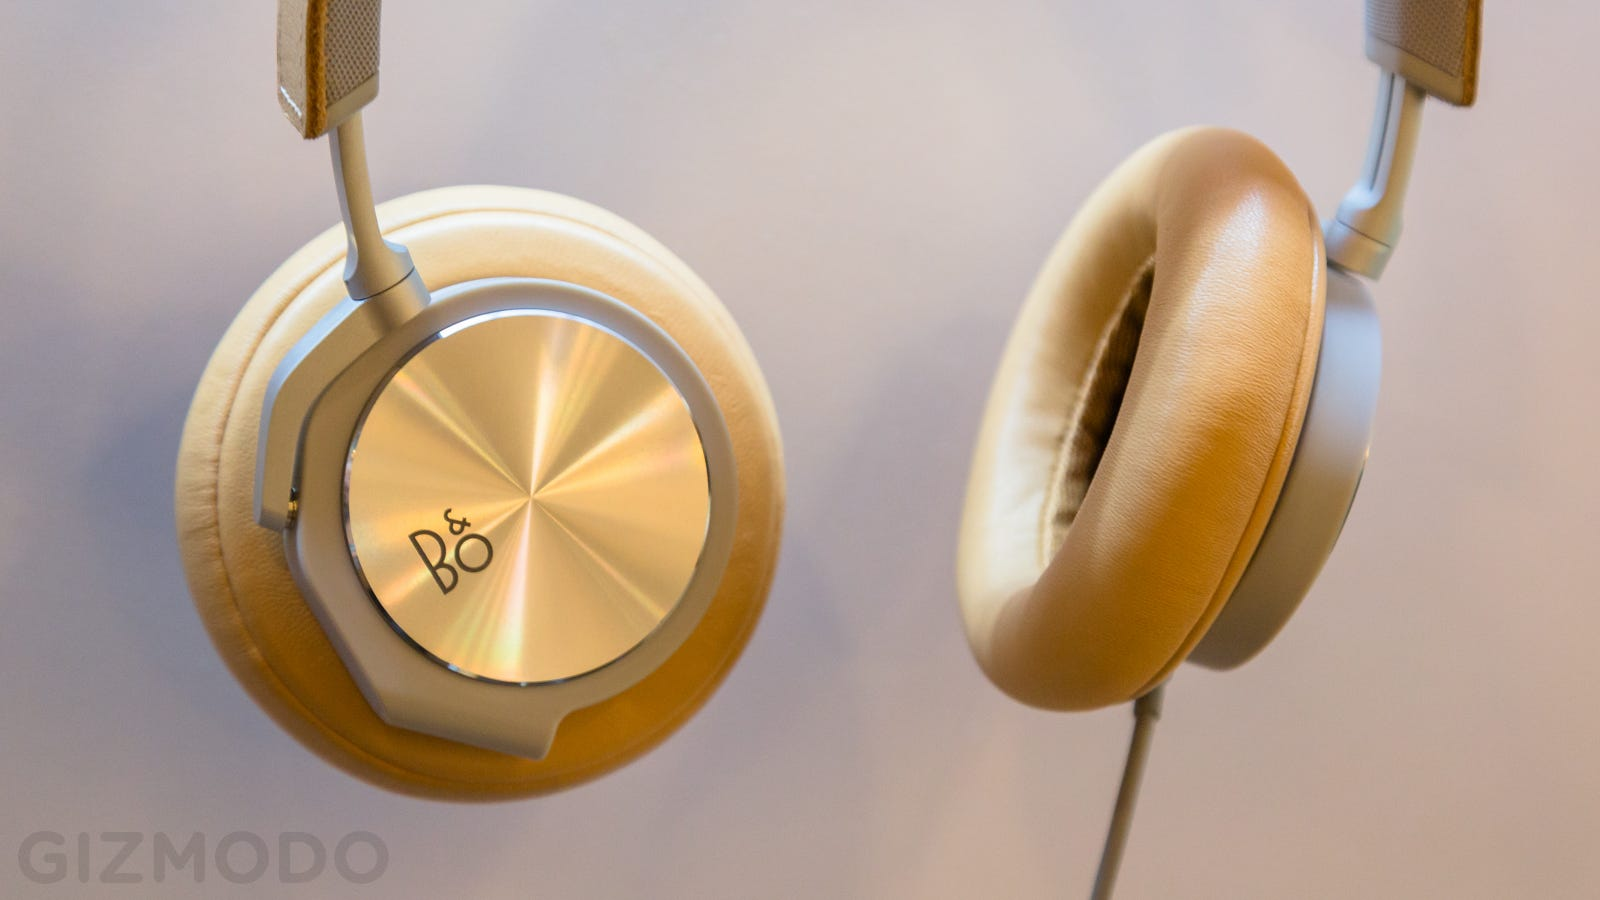 soft earbuds case - B&O H6 Headphones Are So Beautiful and Fancy They'll Fool Your Brain